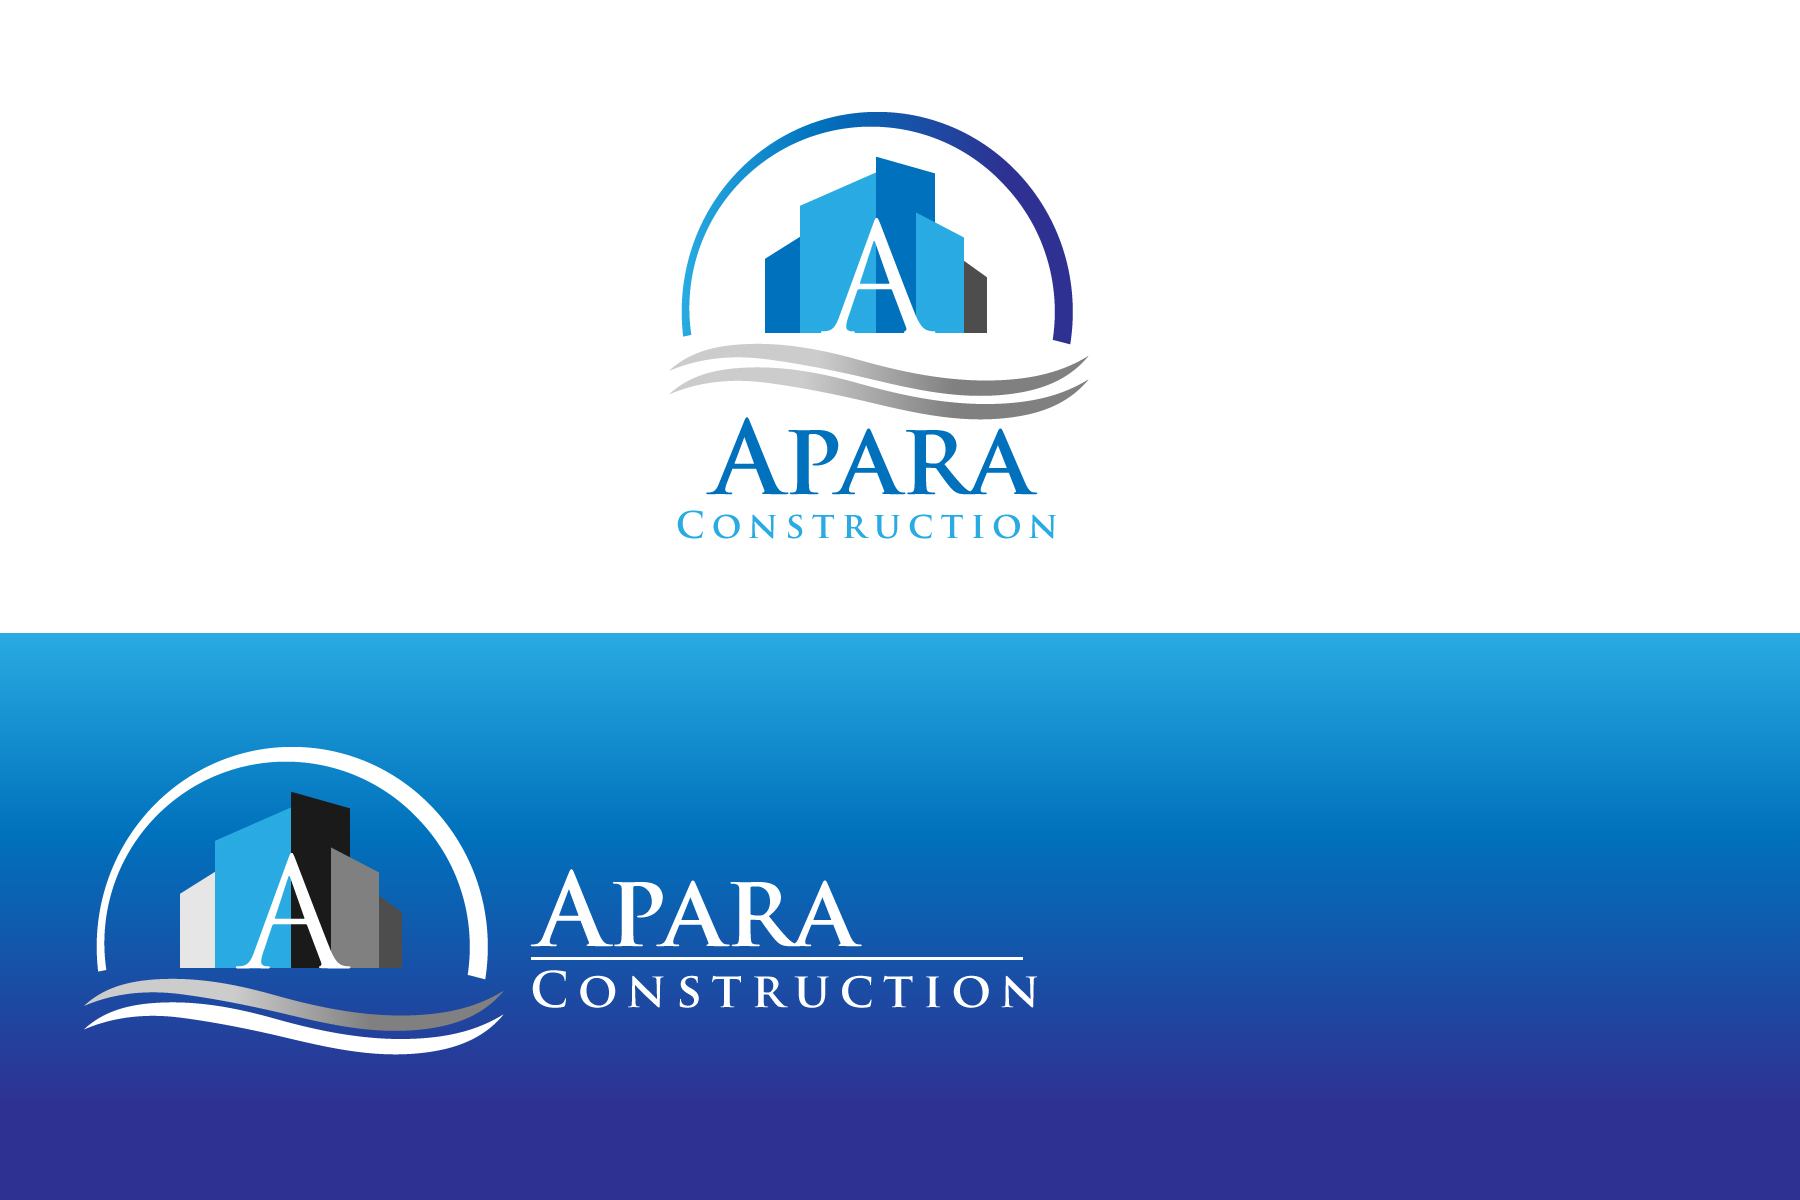 Logo Design by Jagdeep Singh - Entry No. 49 in the Logo Design Contest Apara Construction Logo Design.